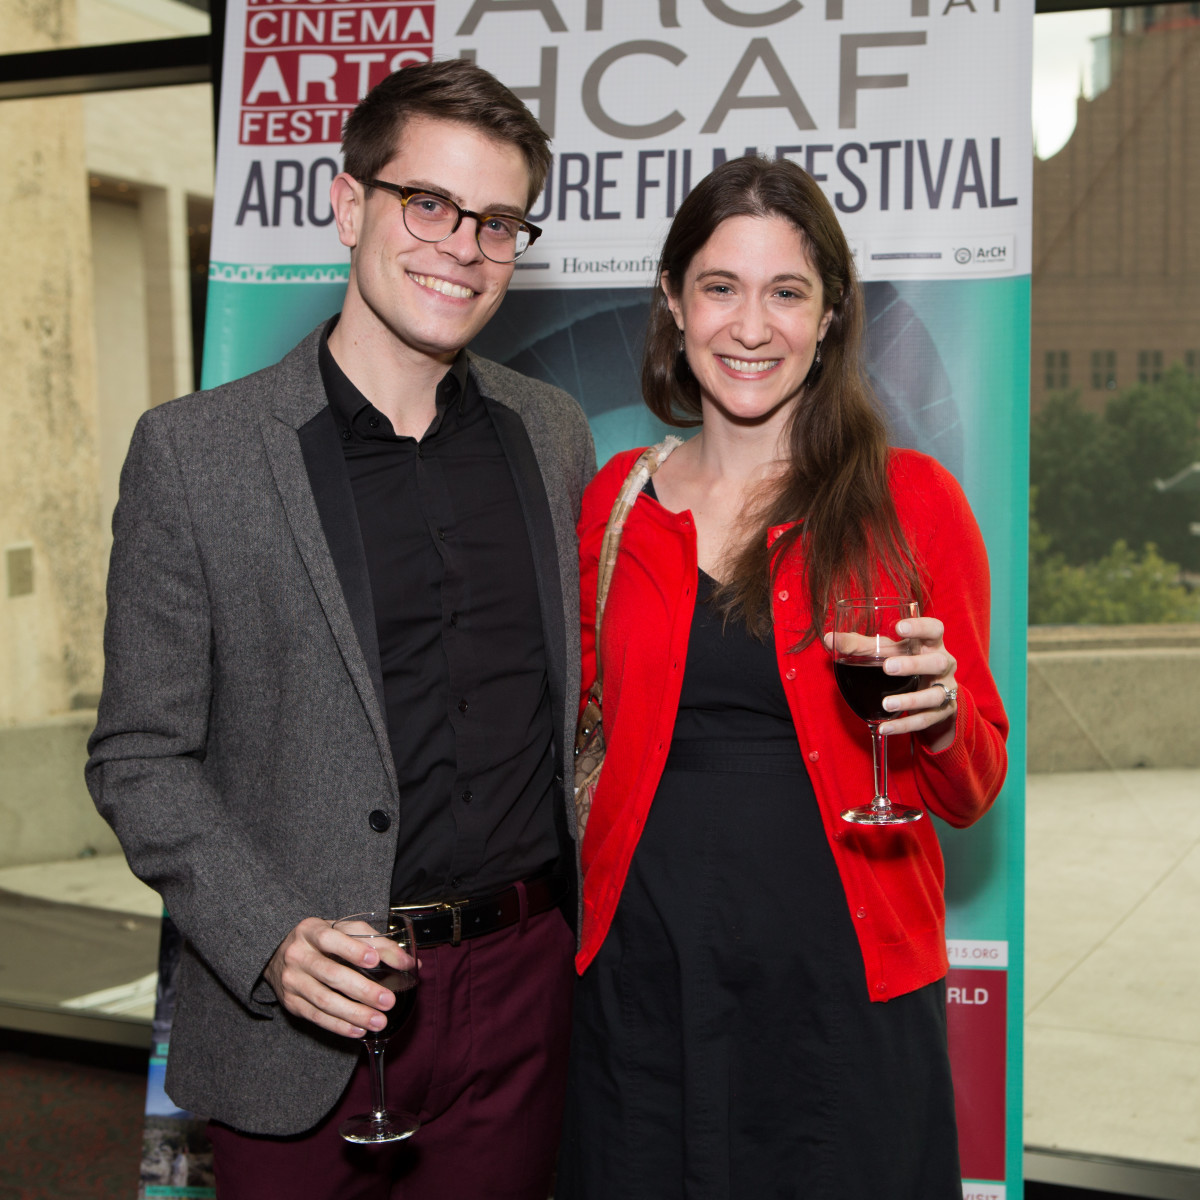 Houston, Houston Cinema Arts Festival Announces Lineup, October 2015, Skyler Gray, Liz Frankel